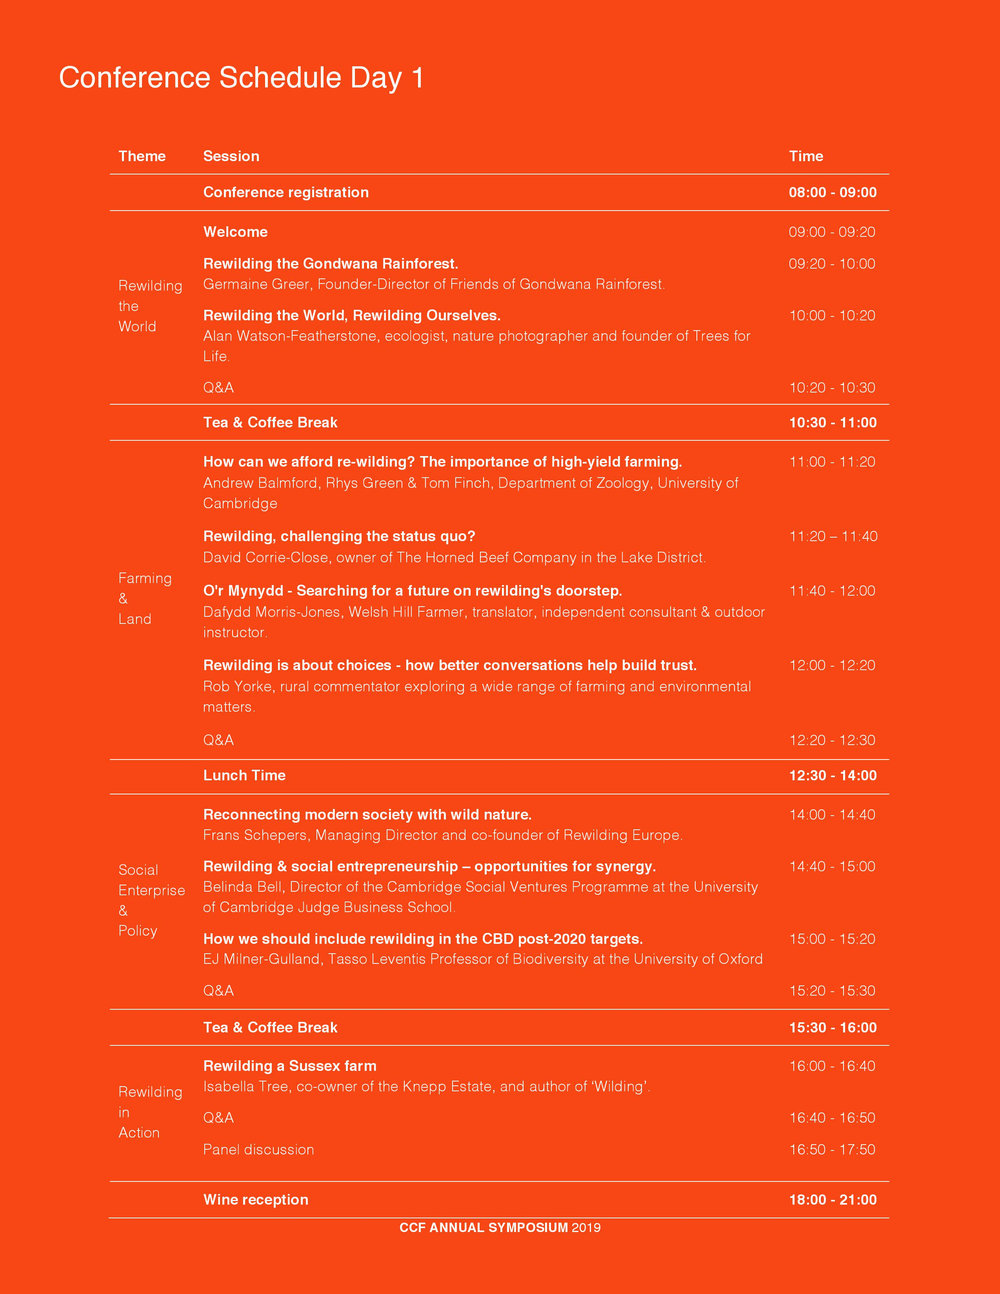 Conference Programme Day 1 FINAL.jpg